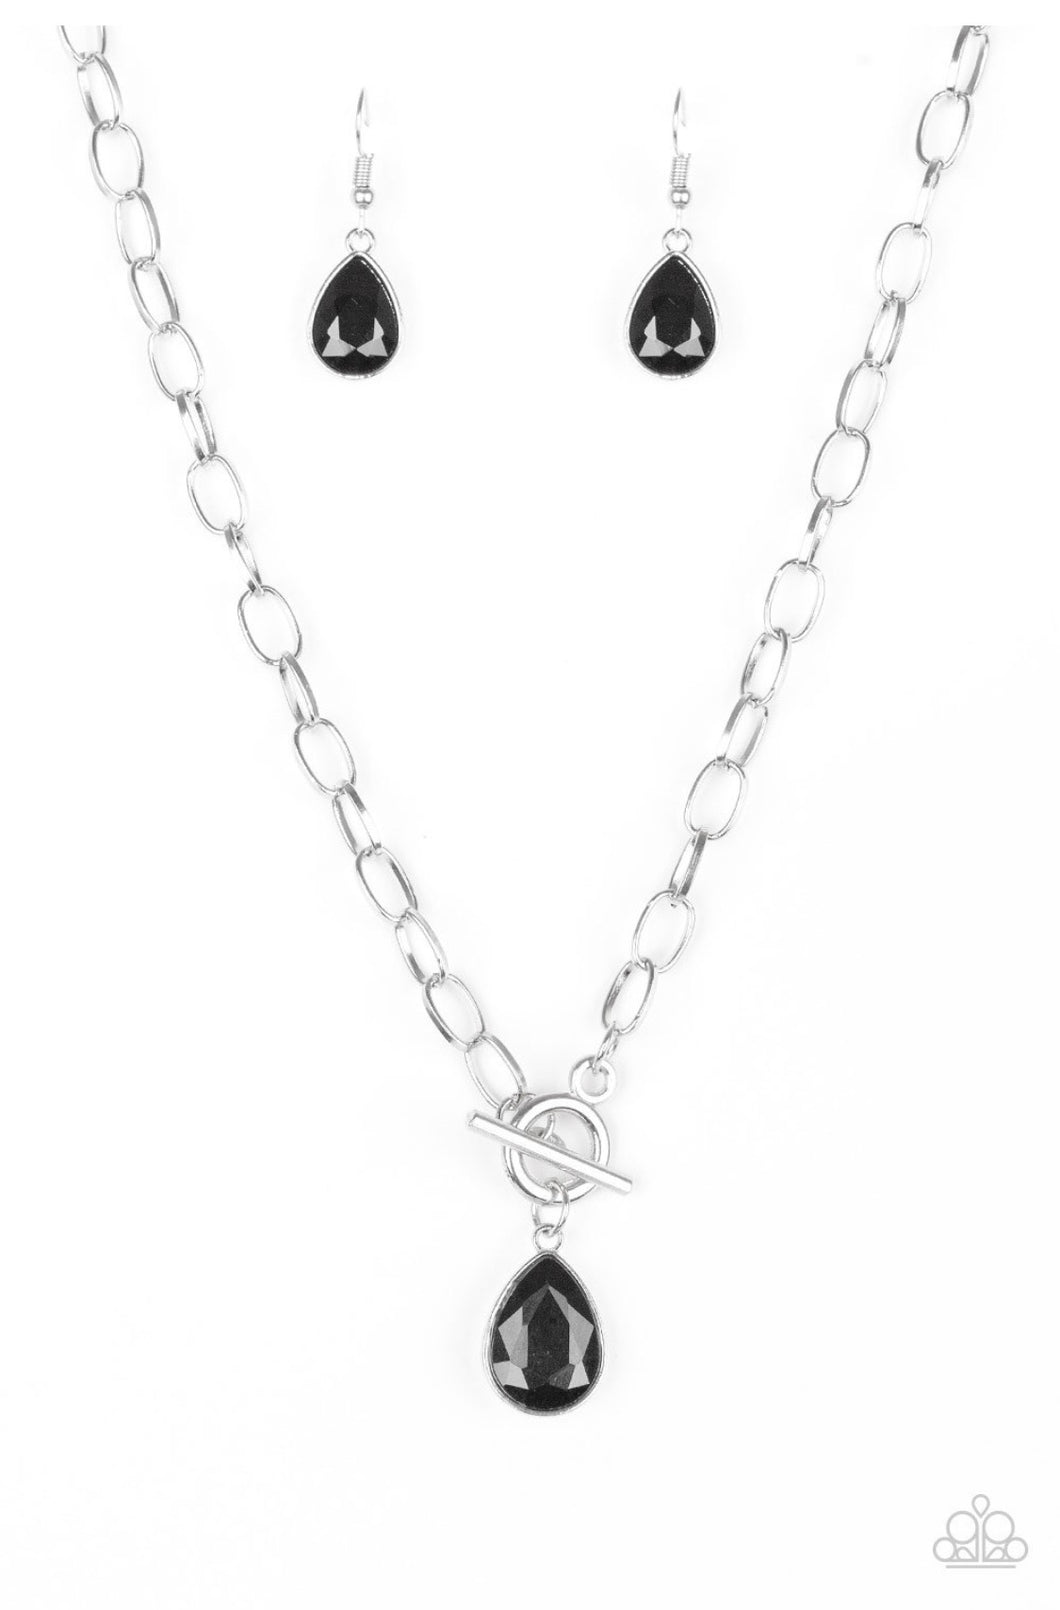 So Sorority - Black & Silver Necklace